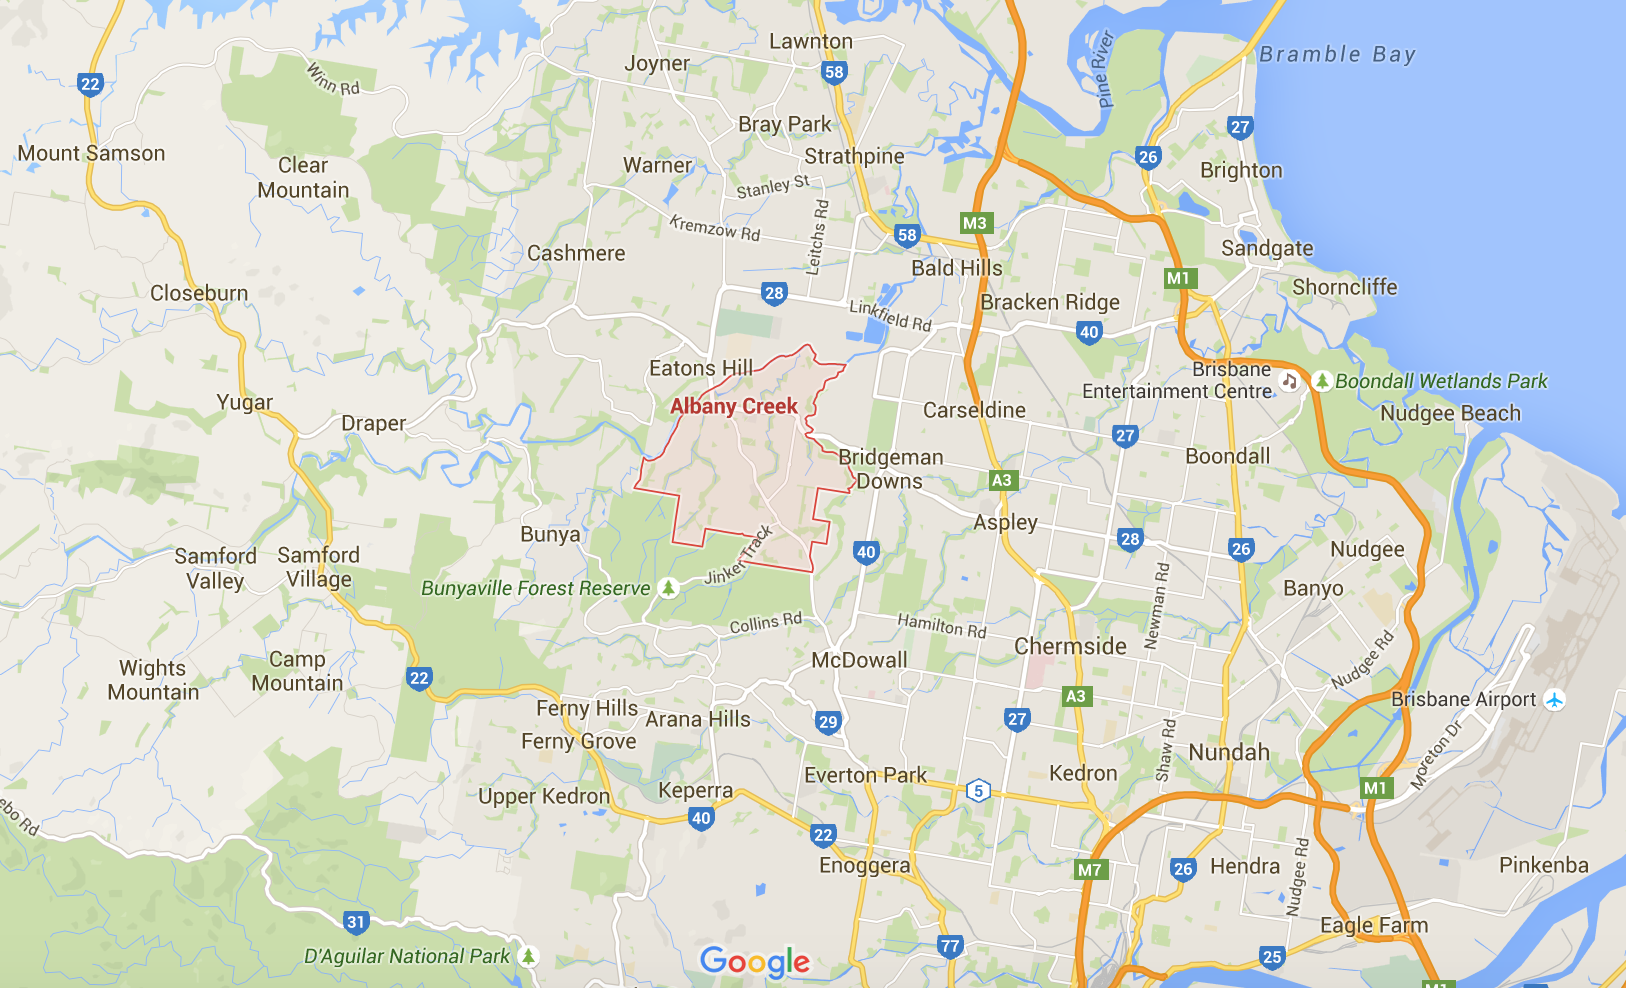 Google map for your lawn mowing services in Albany Creek and beyond